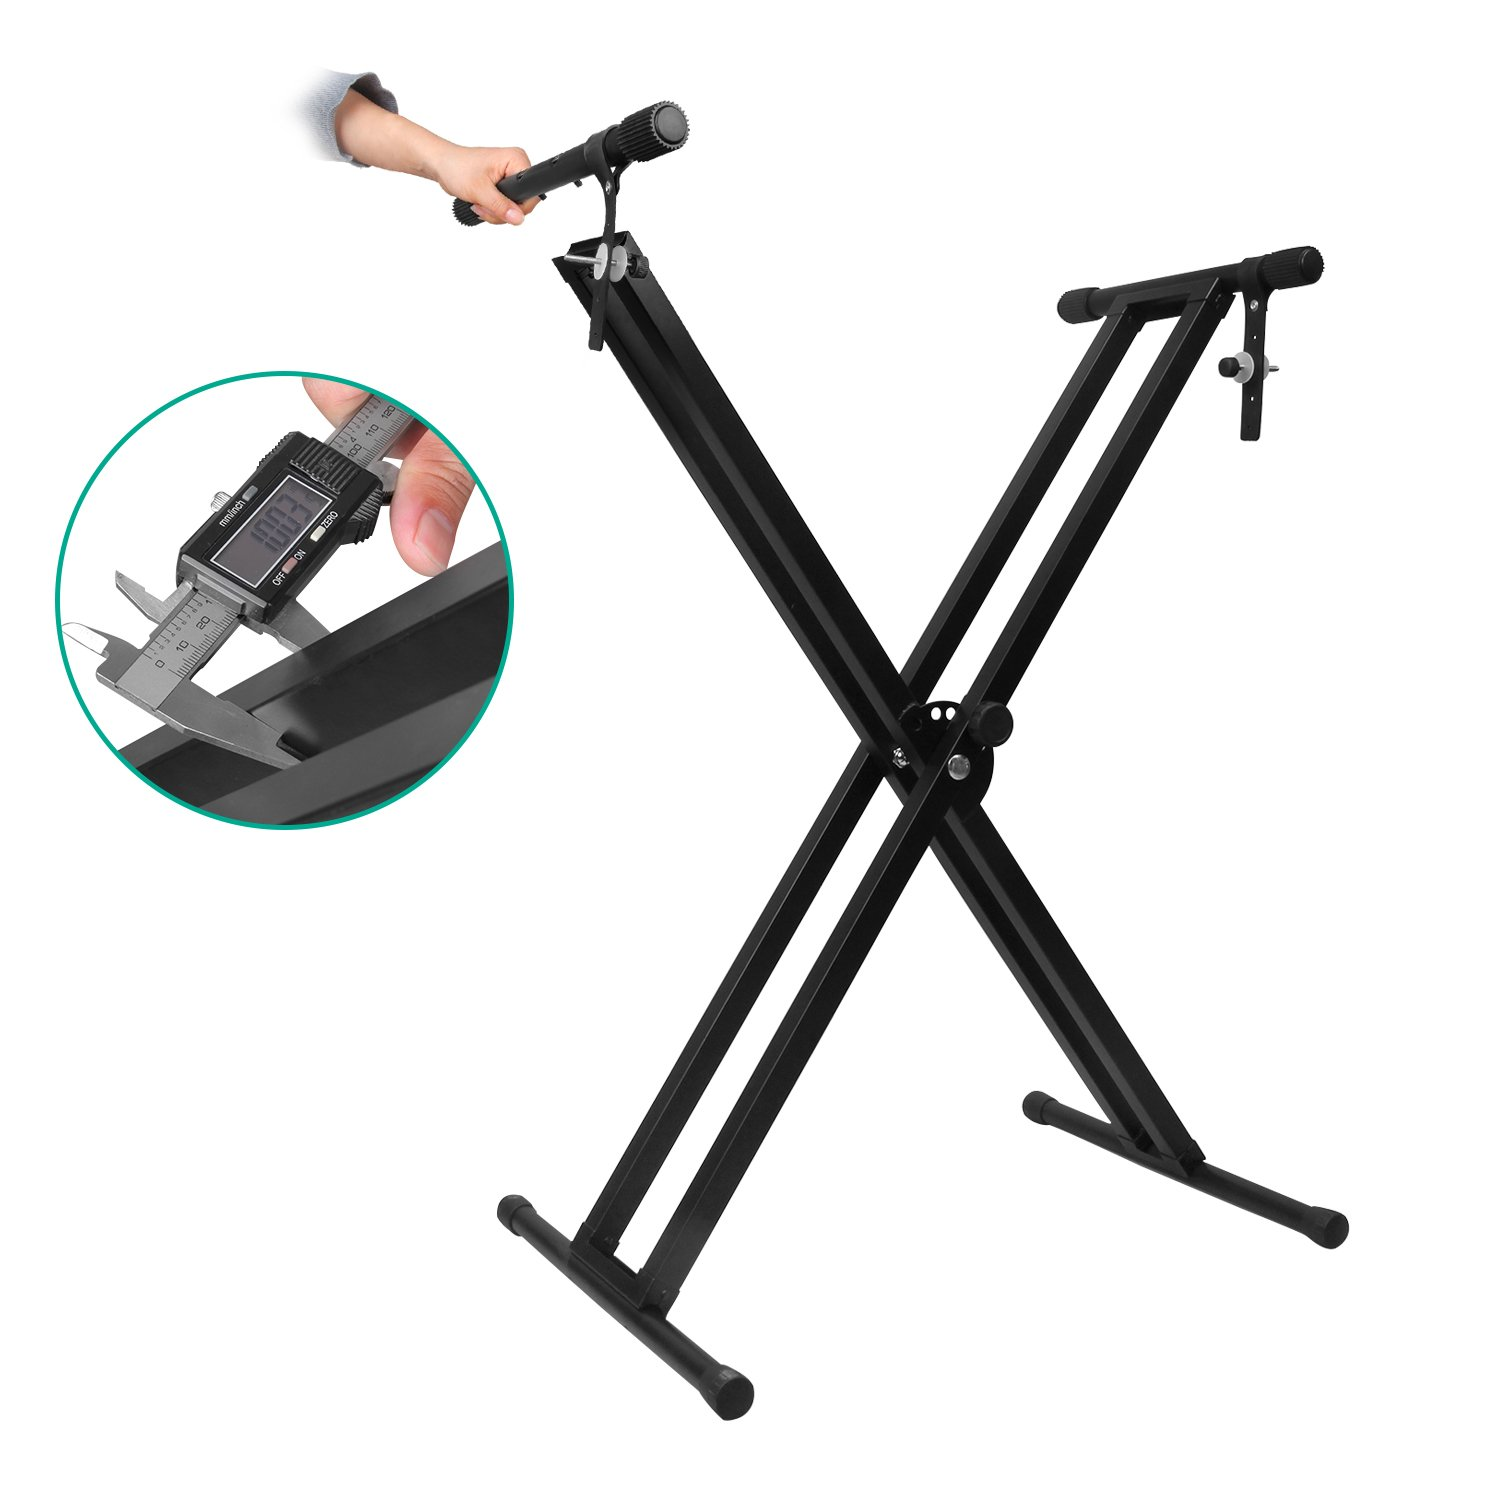 Mugig Keyboard Stand, Ajustable Piano Stand, Heavy Duty X-Style Double Braced with Locking Straps for Keyboard, Piano MPK-7